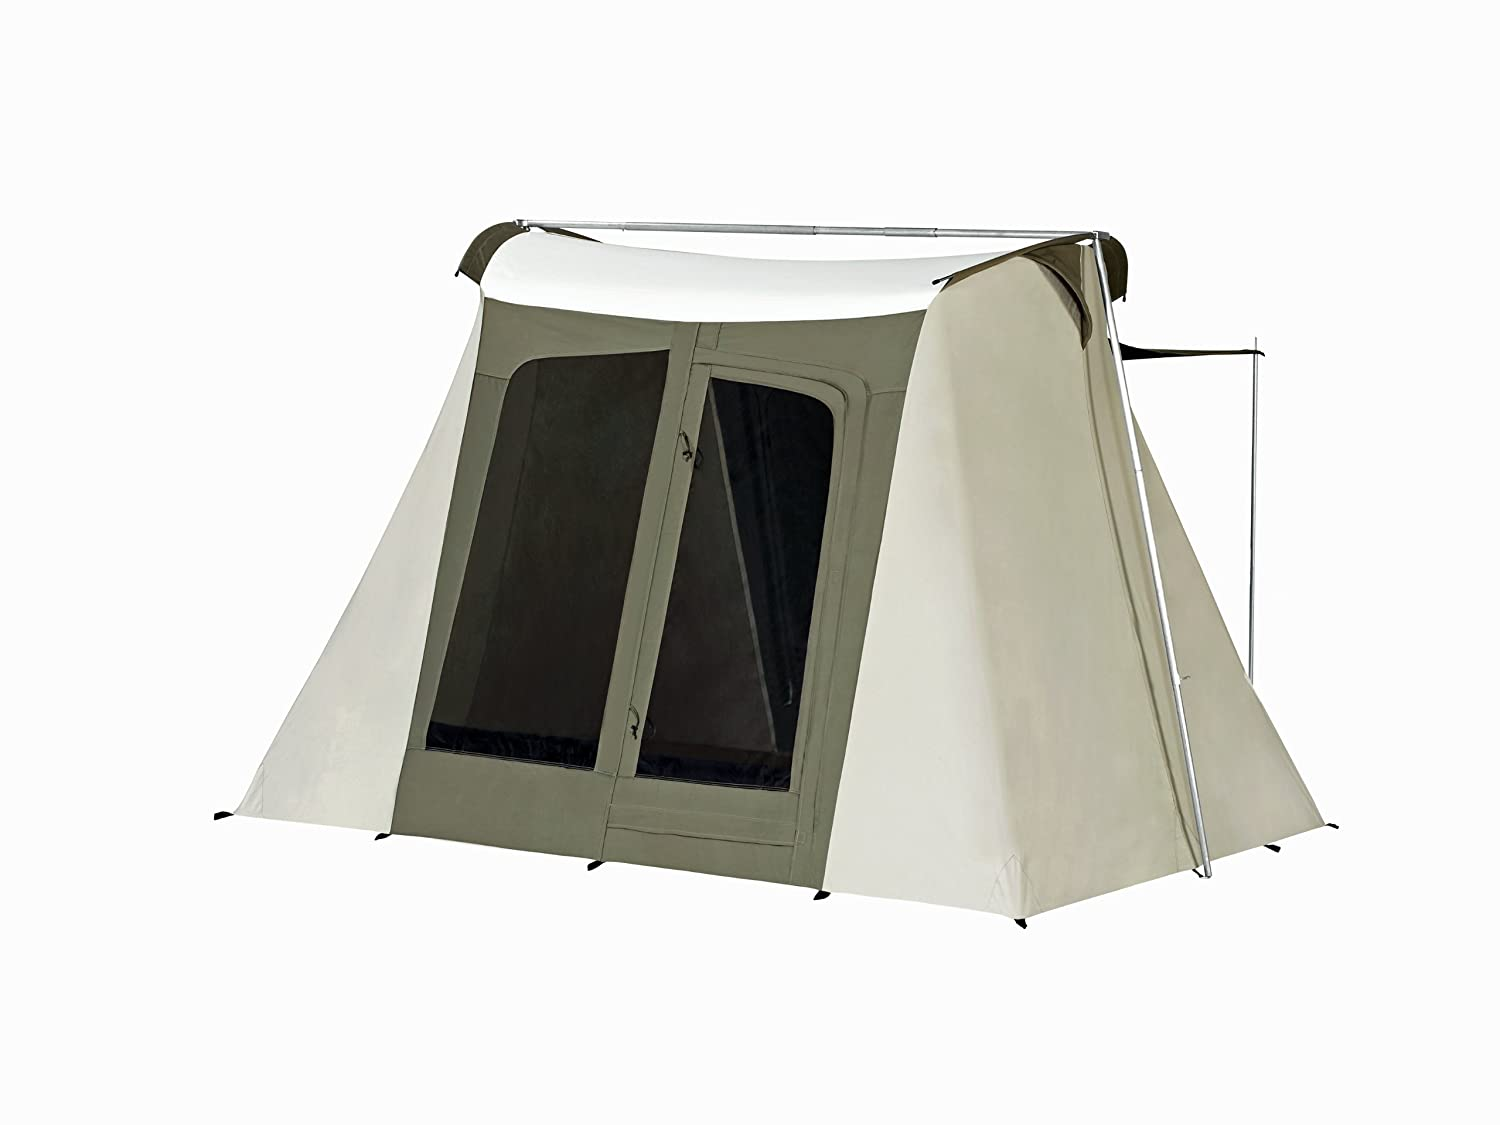 Amazon.com  Kodiak Canvas Flex-Bow 4-Person Canvas Tent Deluxe  Family Tents  Sports u0026 Outdoors  sc 1 st  Amazon.com & Amazon.com : Kodiak Canvas Flex-Bow 4-Person Canvas Tent Deluxe ...